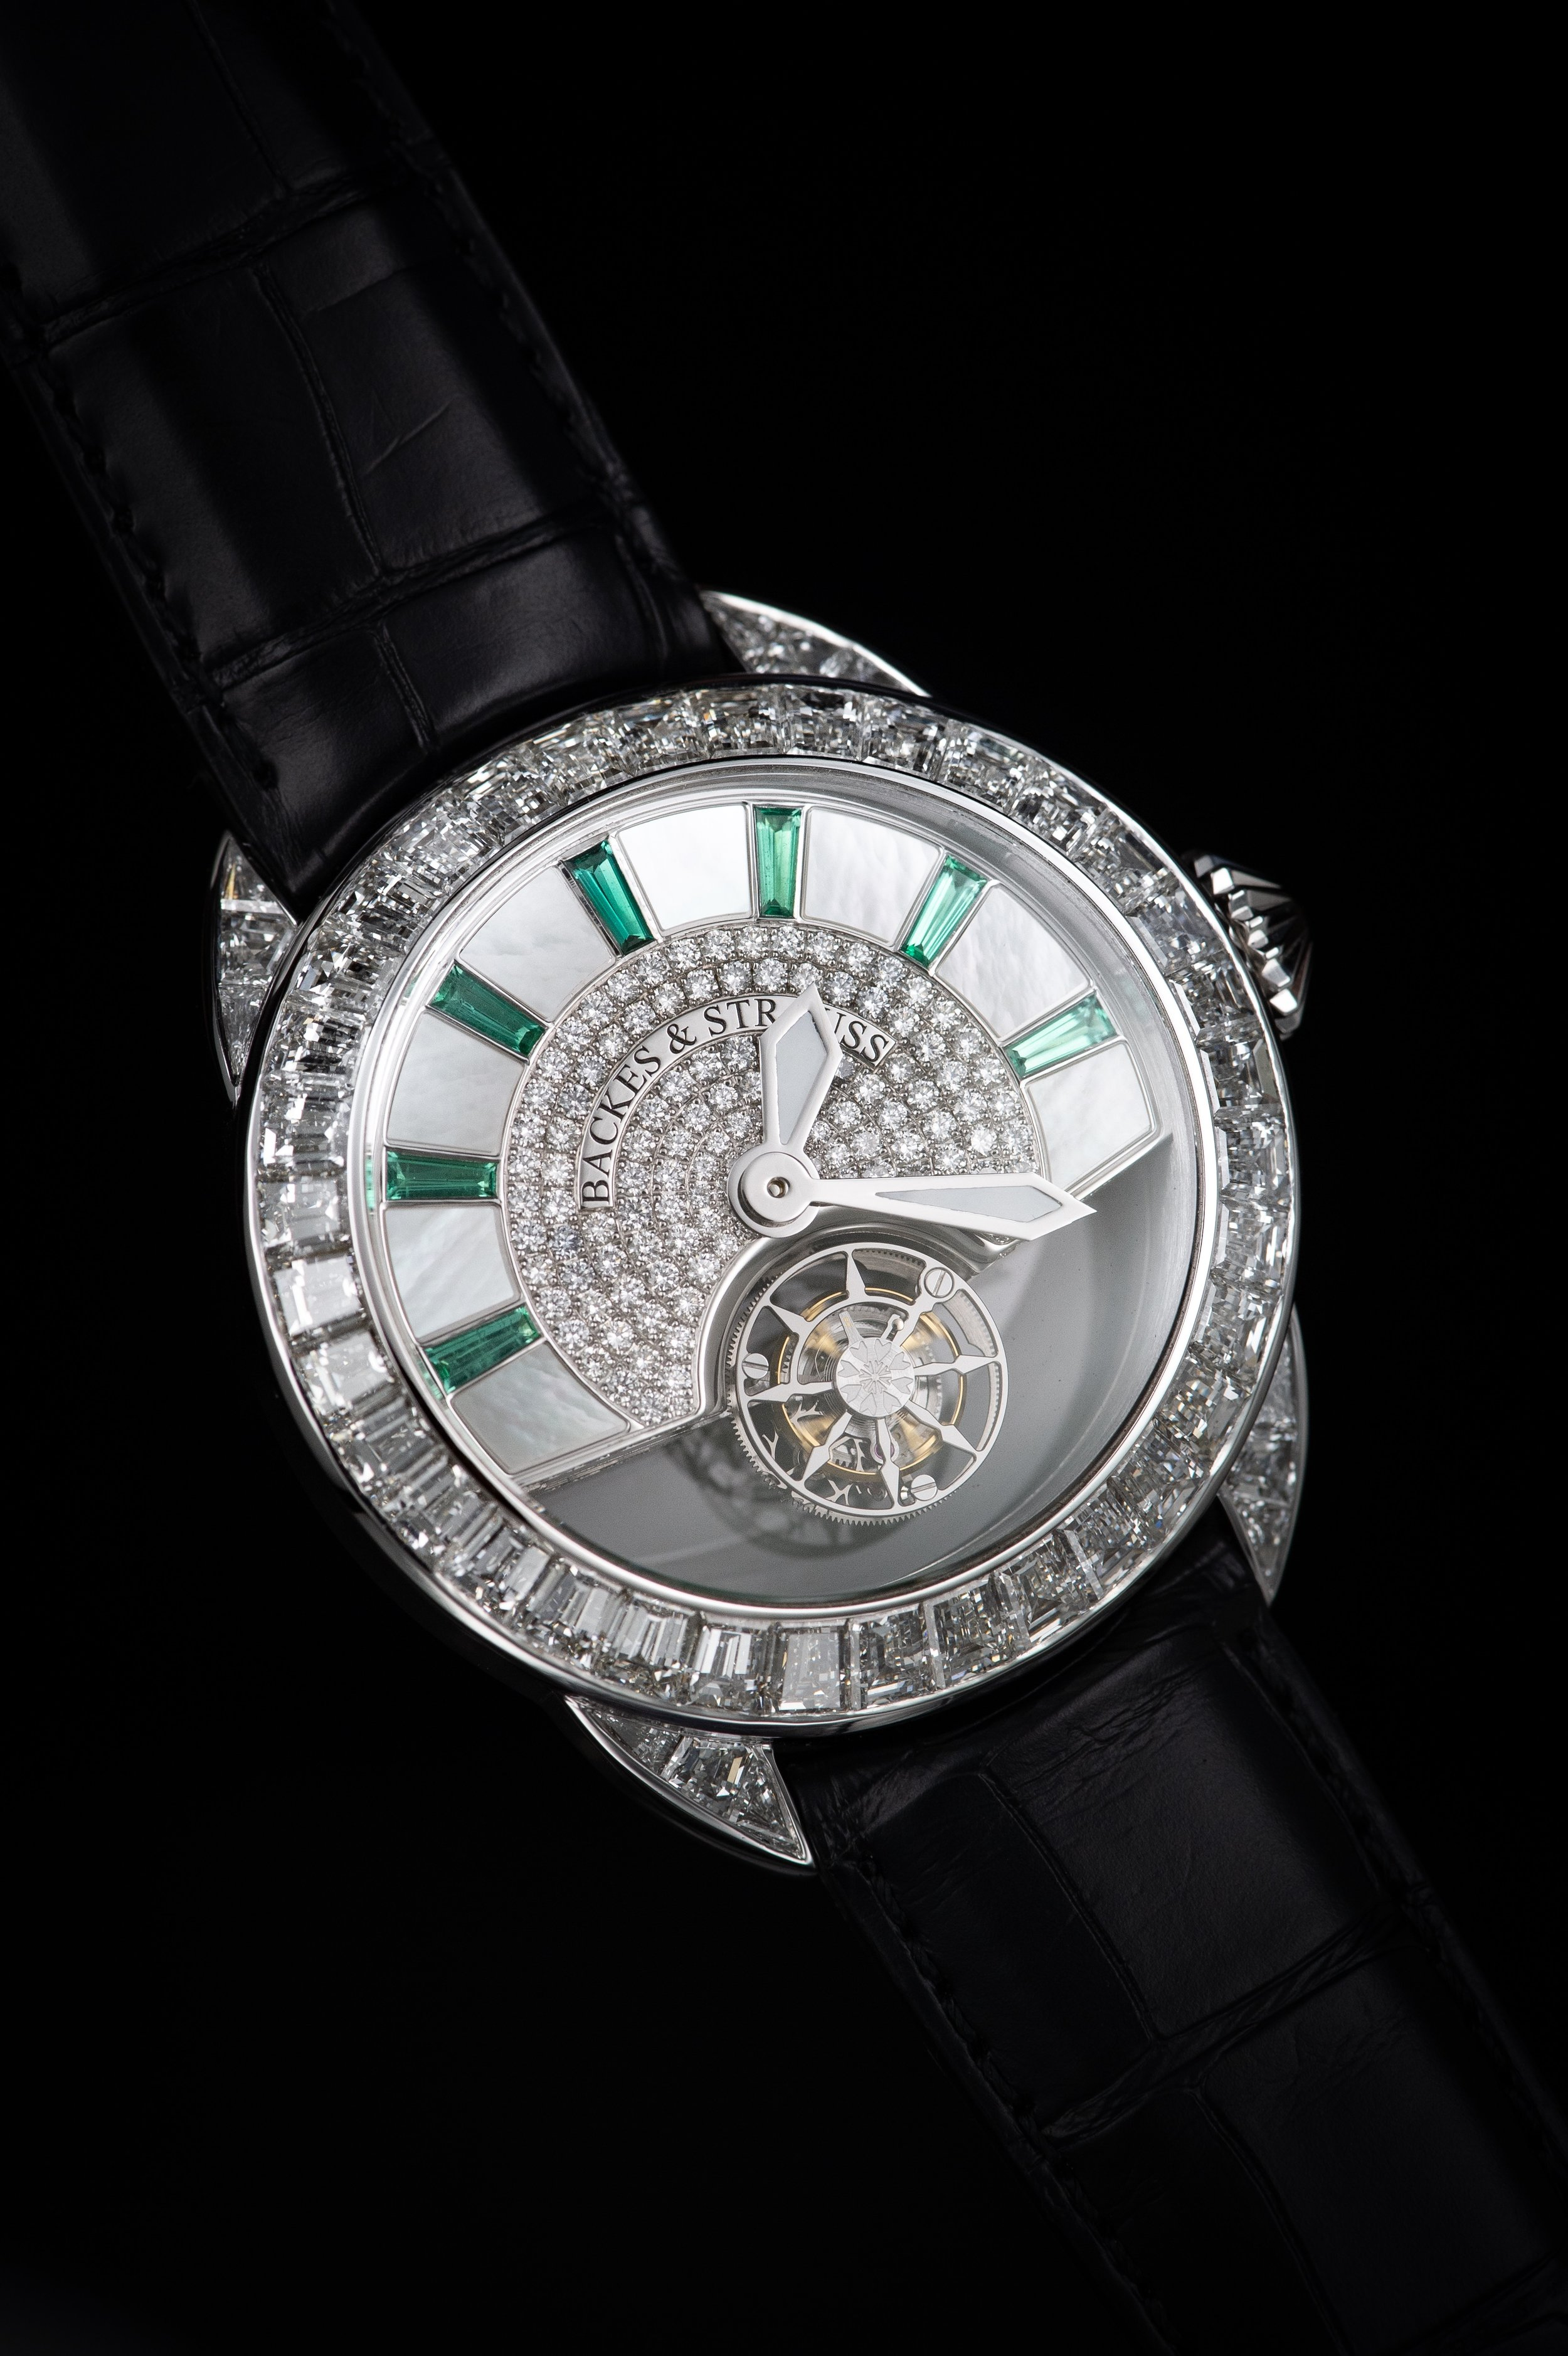 Piccadilly 45 King Tourbillon iconic diamond encrusted watch side-shot